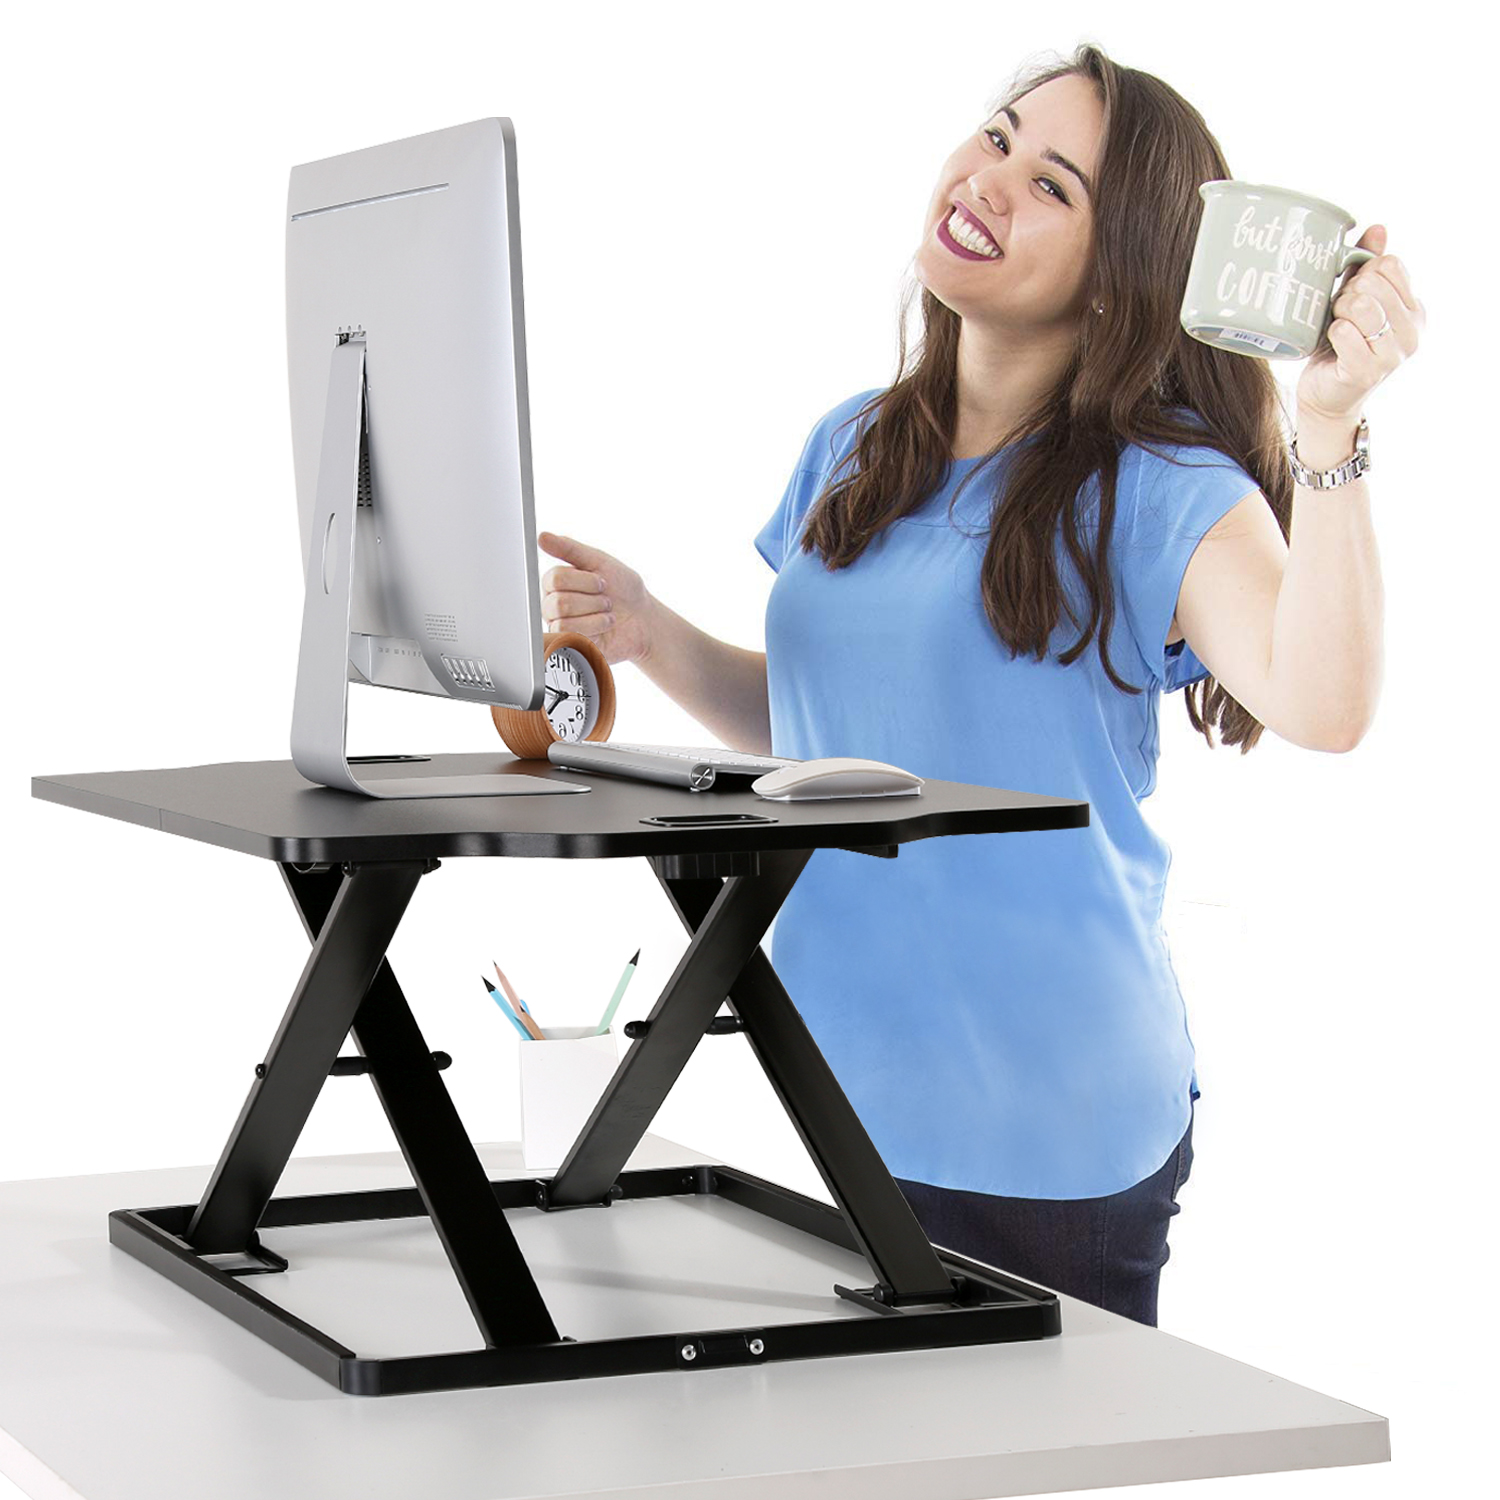 (EU EXCLUSIVE)PUTORSEN® Standing Desk Converter, 32'' Height Adjustable Sit Stand Desk Converter Ergonomic Standing up Work Station, Ultra Slim Folded Design